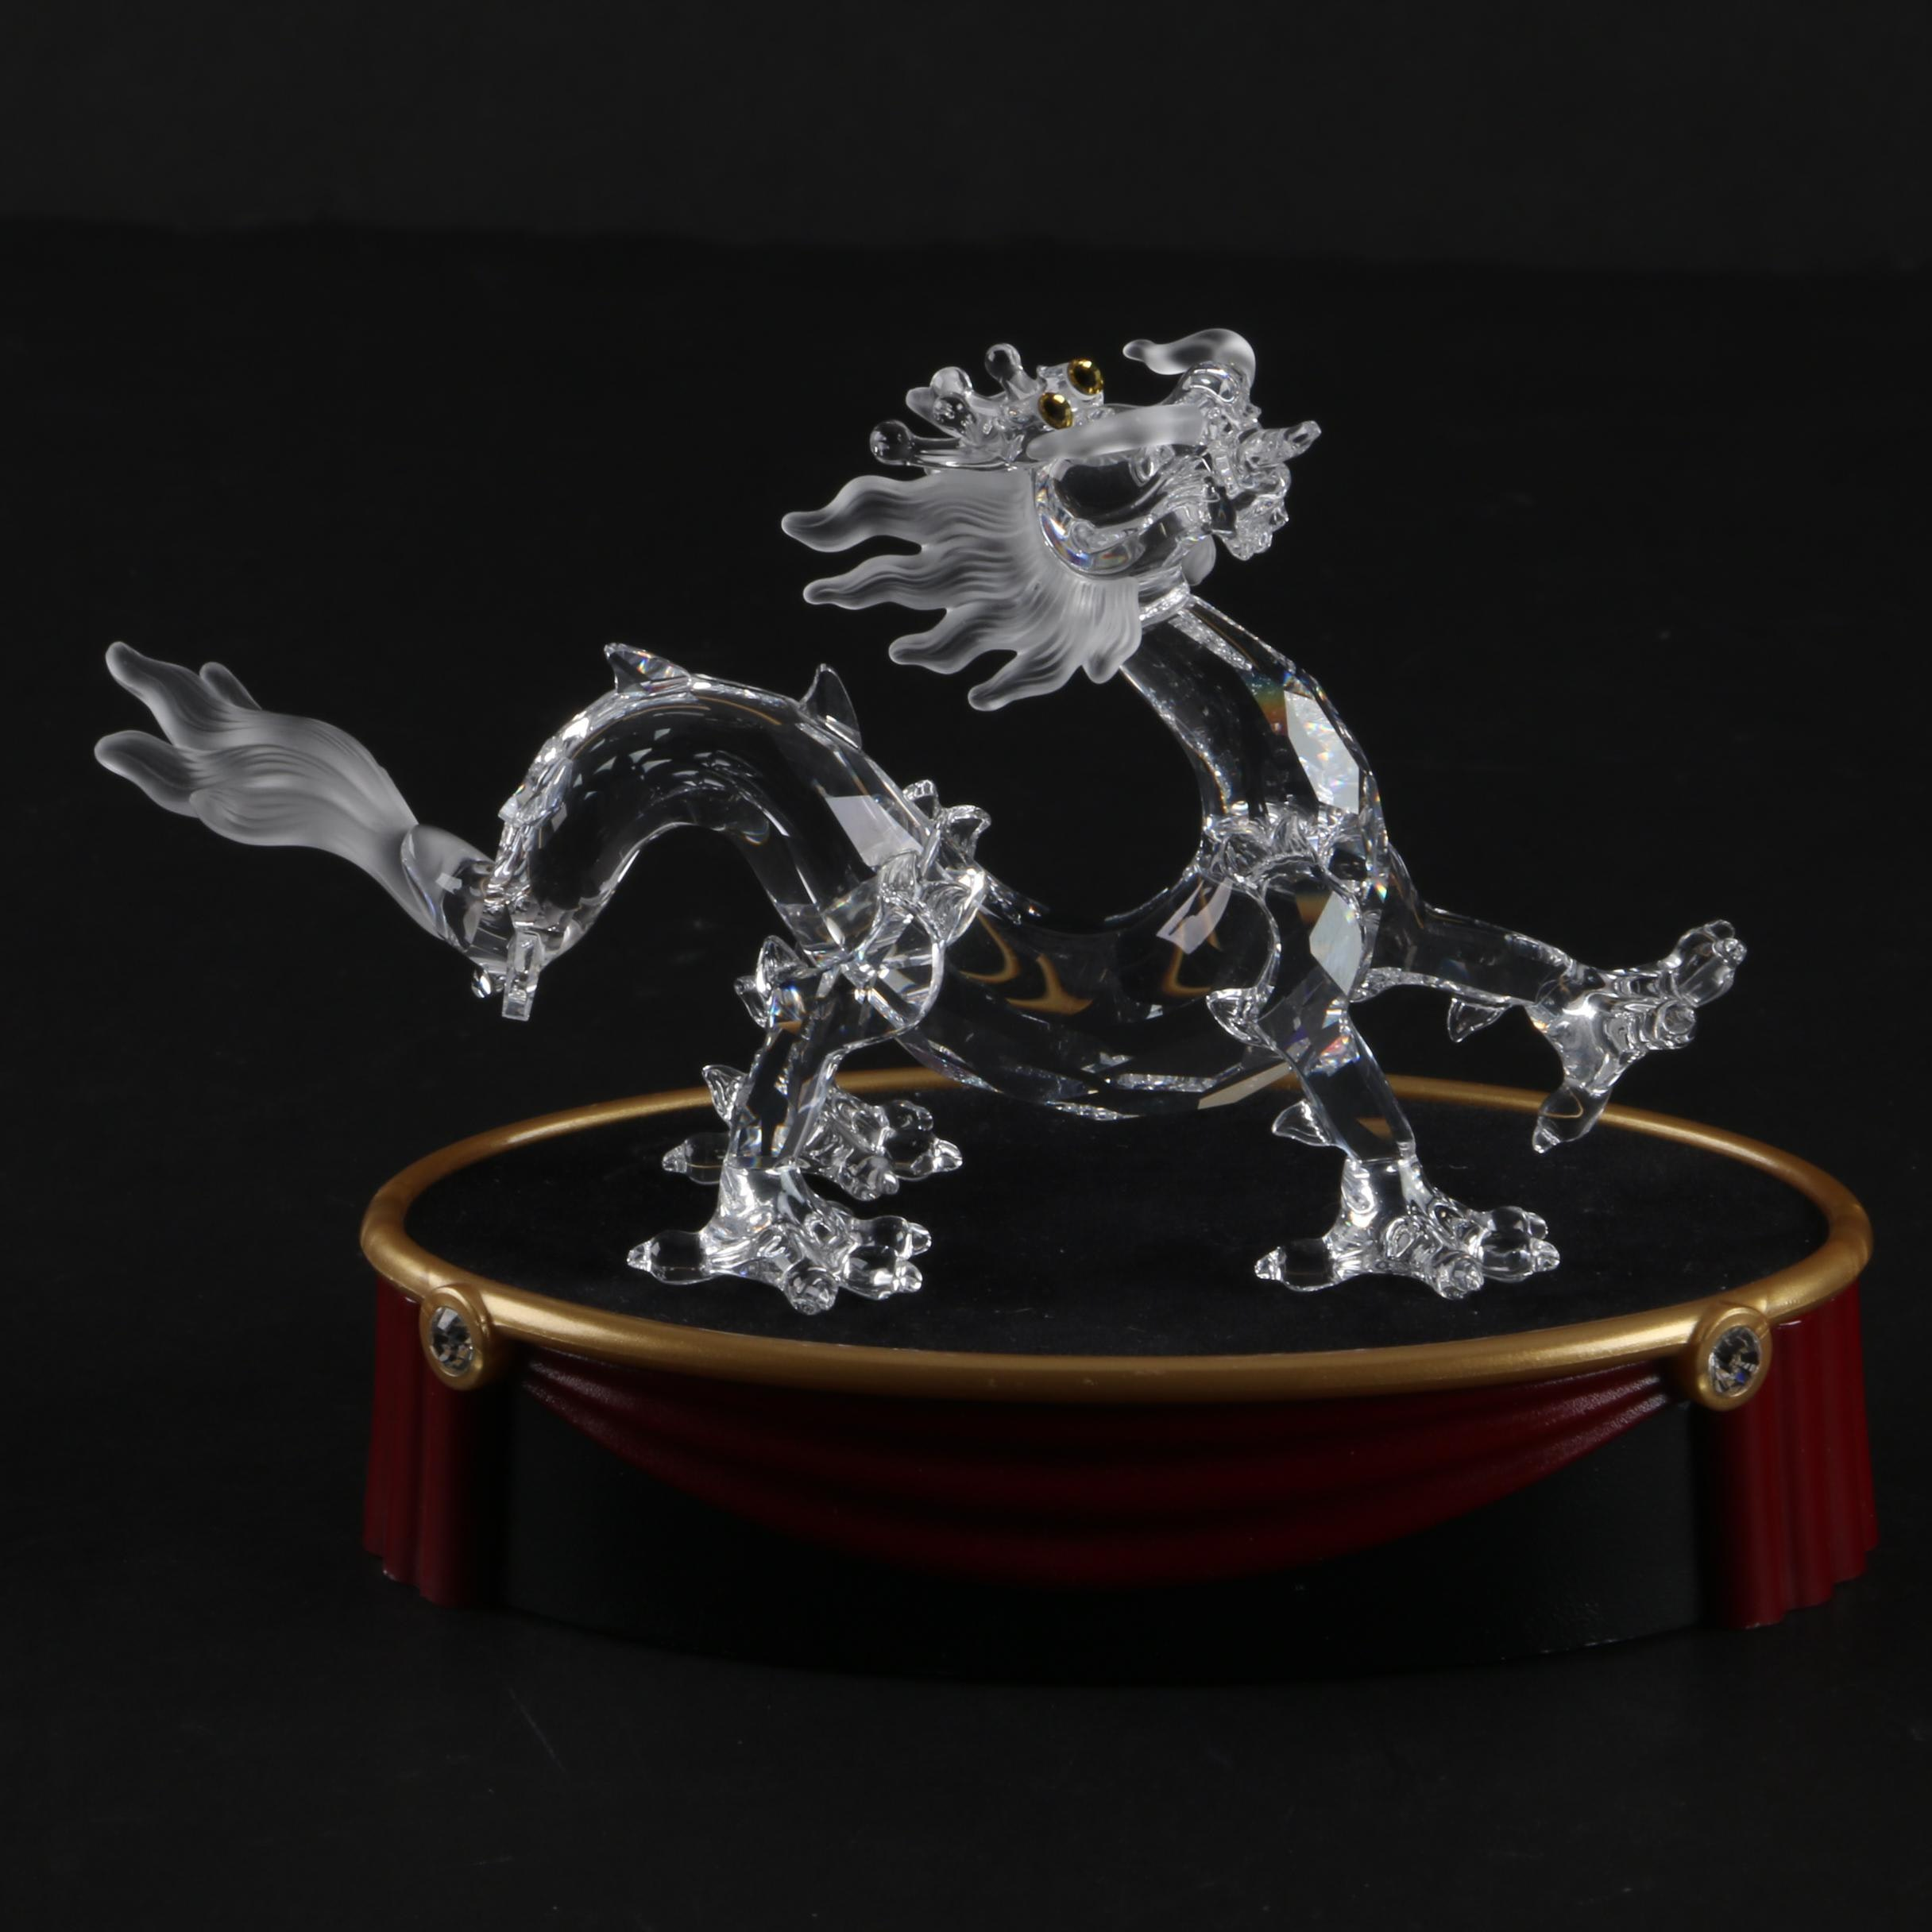 Swarovski Crystal Chinese Dragon Figurine with Stand